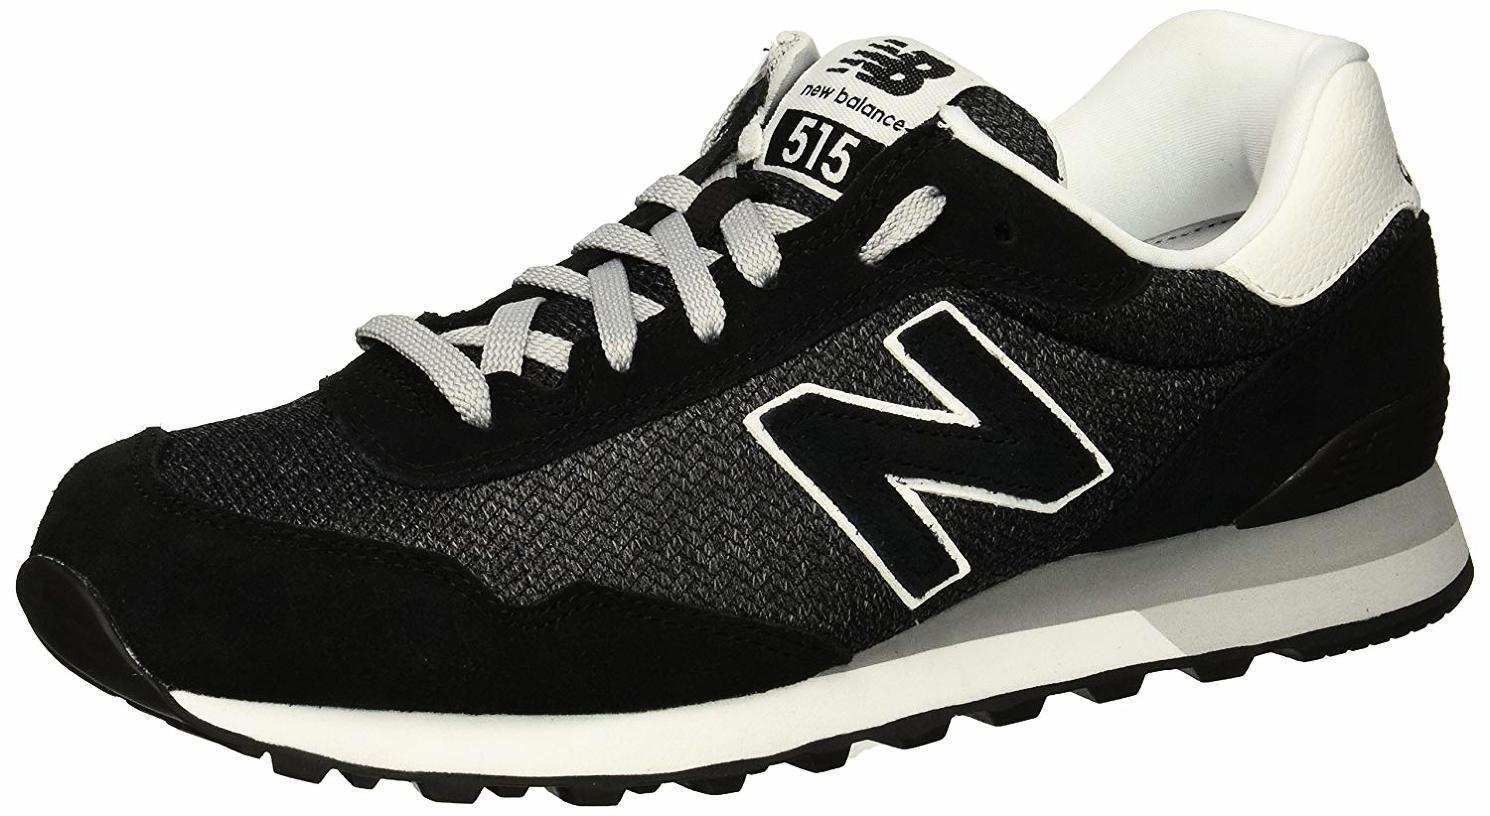 New Balance Men's Men's Men's 515V1 scarpe da ginnastica, - Choose SZ Coloreeee 03c486